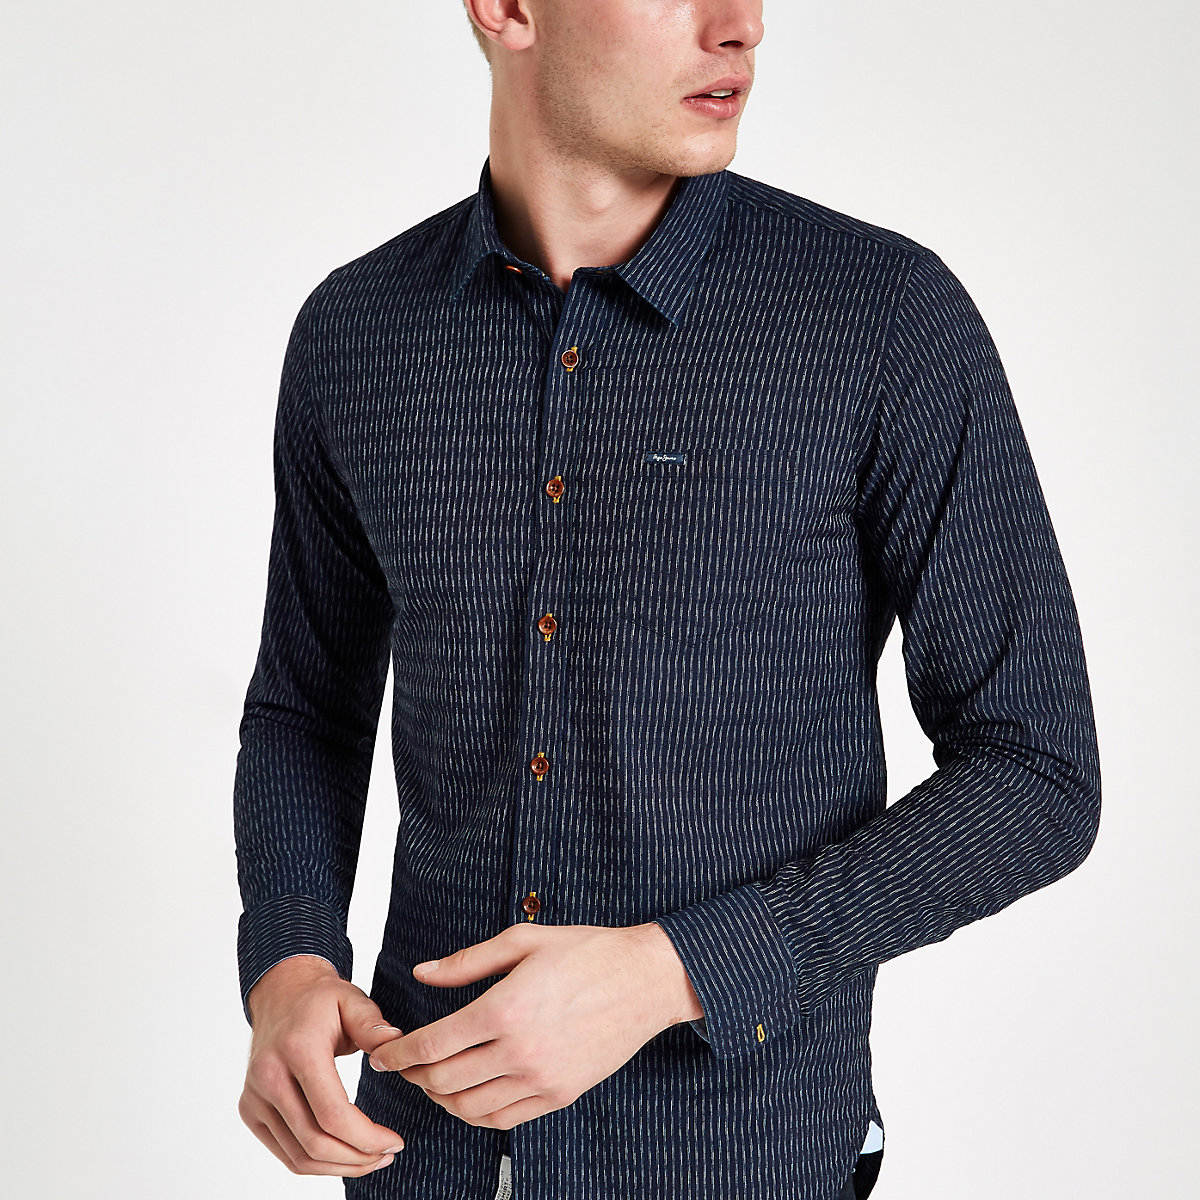 Pepe Jeans blue Chesterfield shirt